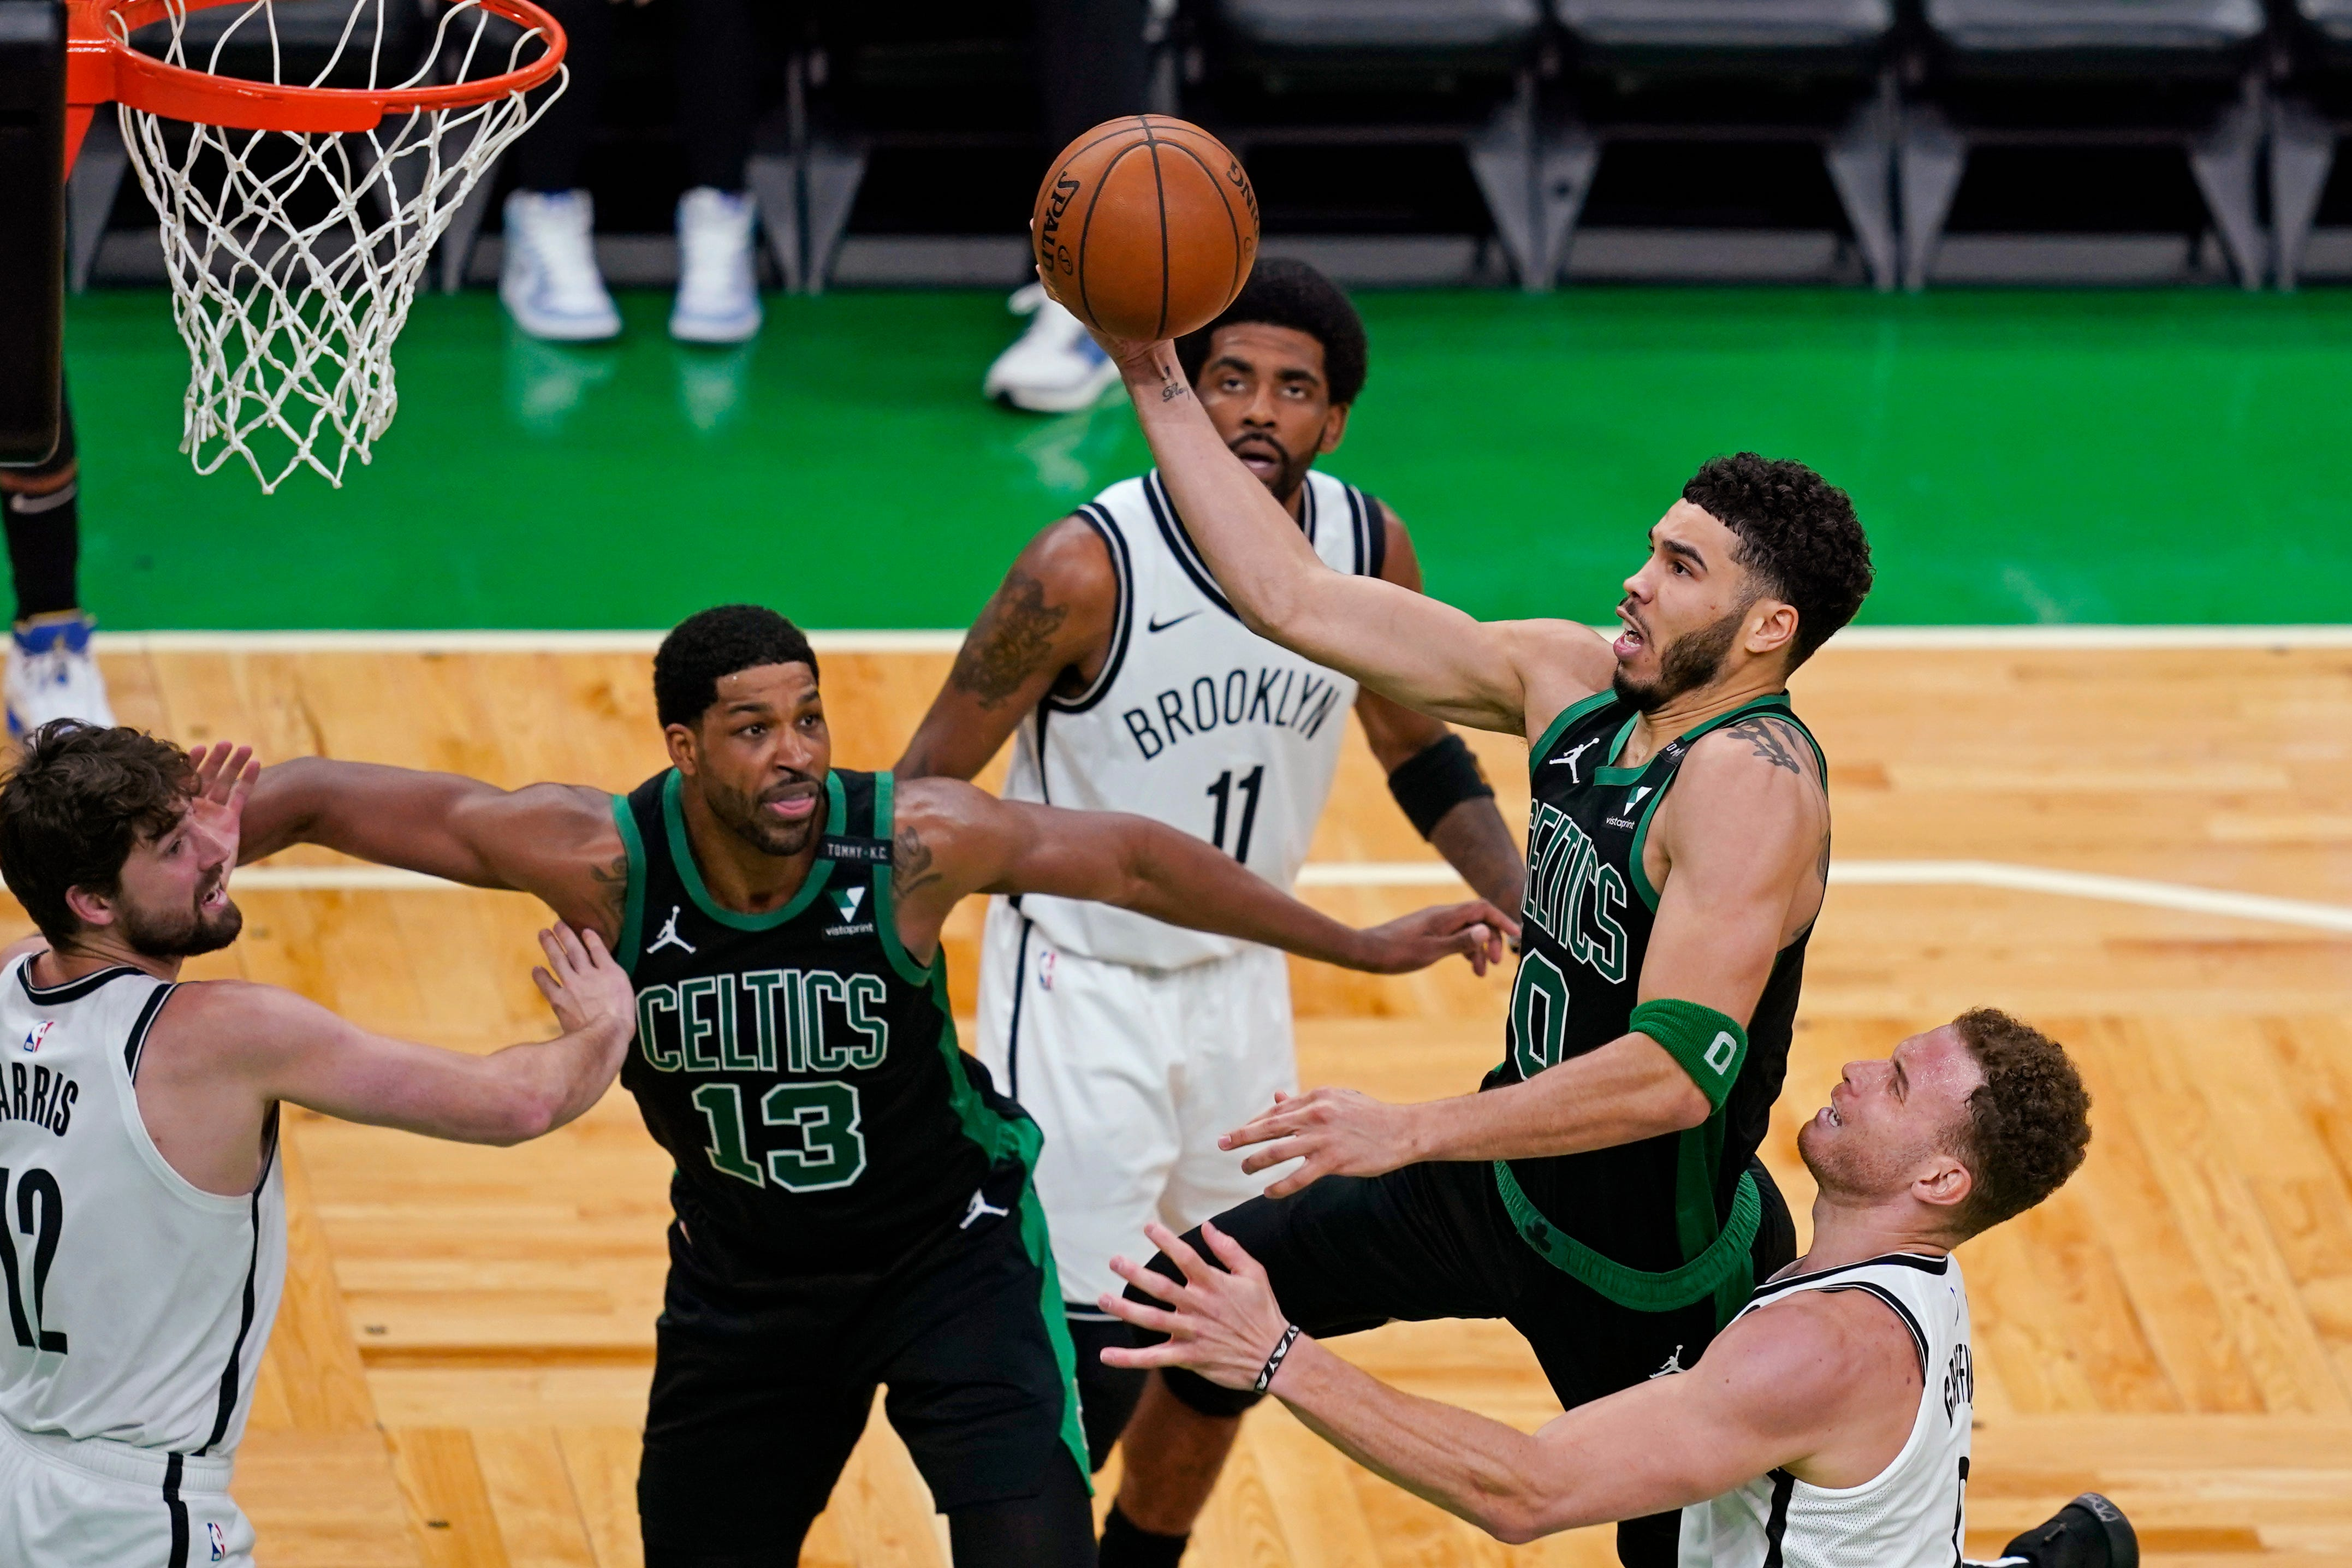 Celtics hold off Nets behind Jayson Tatum s 50 points to cut series deficit to 2-1